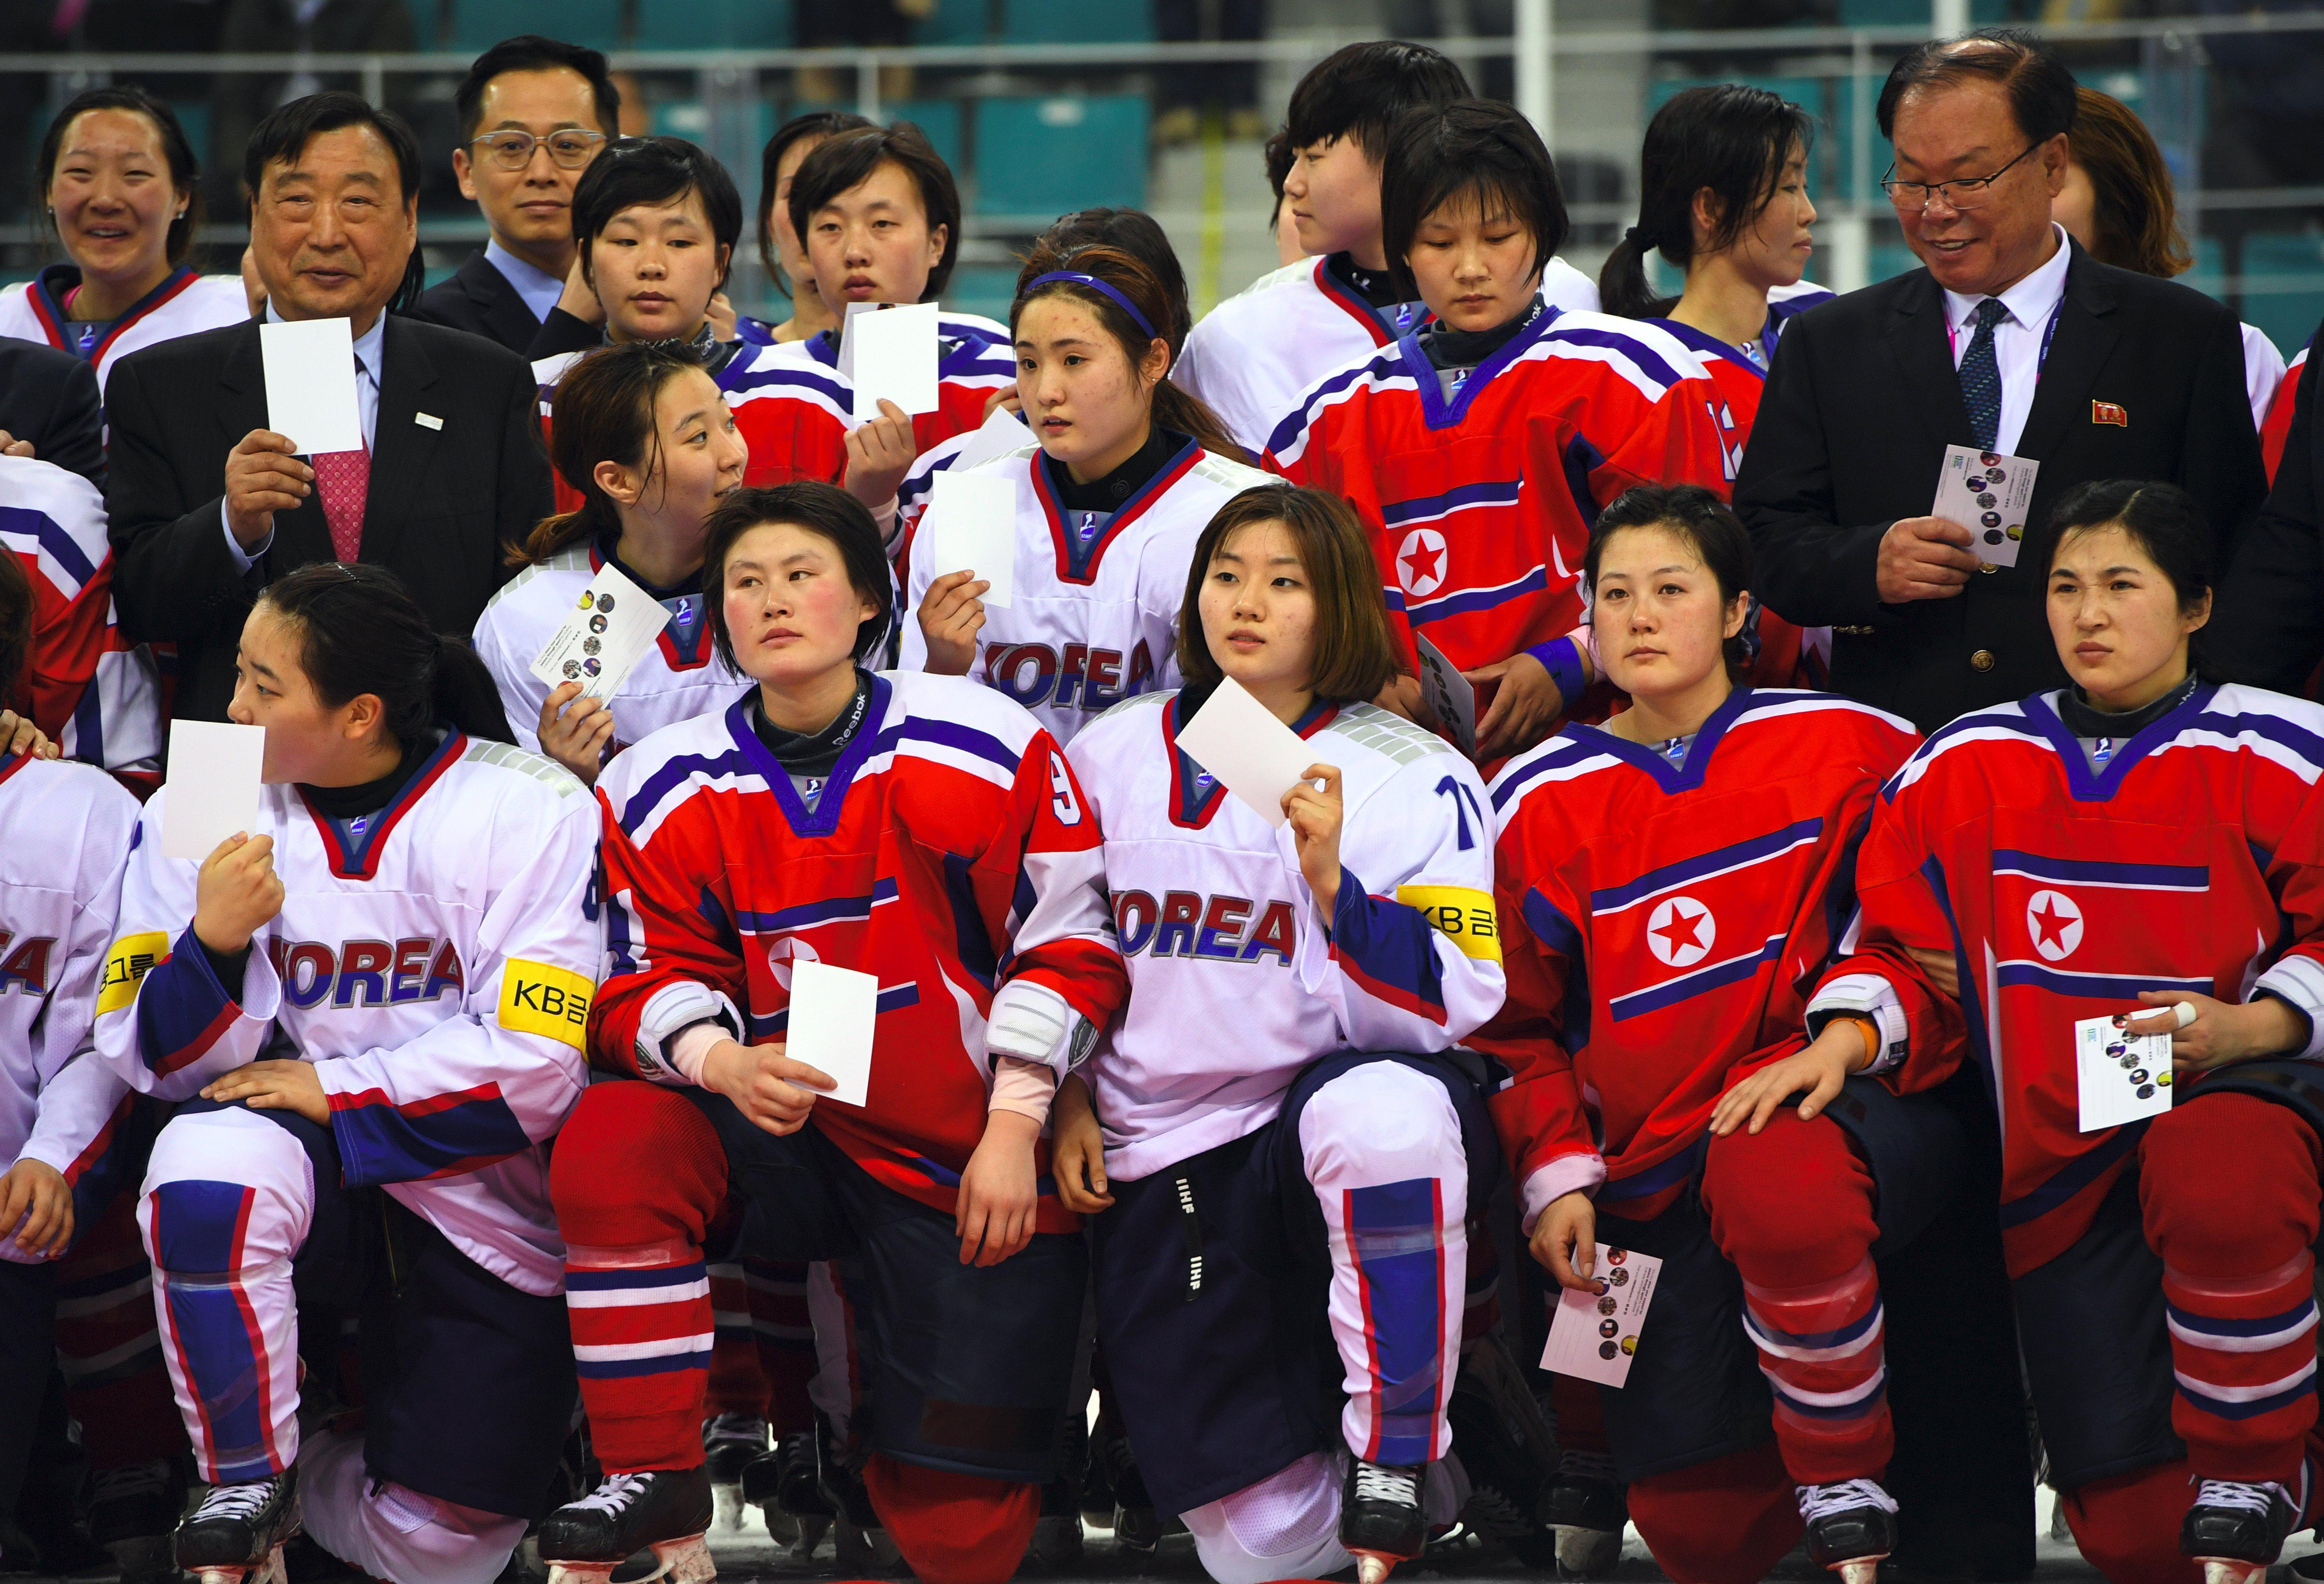 Historic talks between North Korea and South Korea are going so smoothly the nations are considering a joint ice hockey team for the Winter Olympics next month